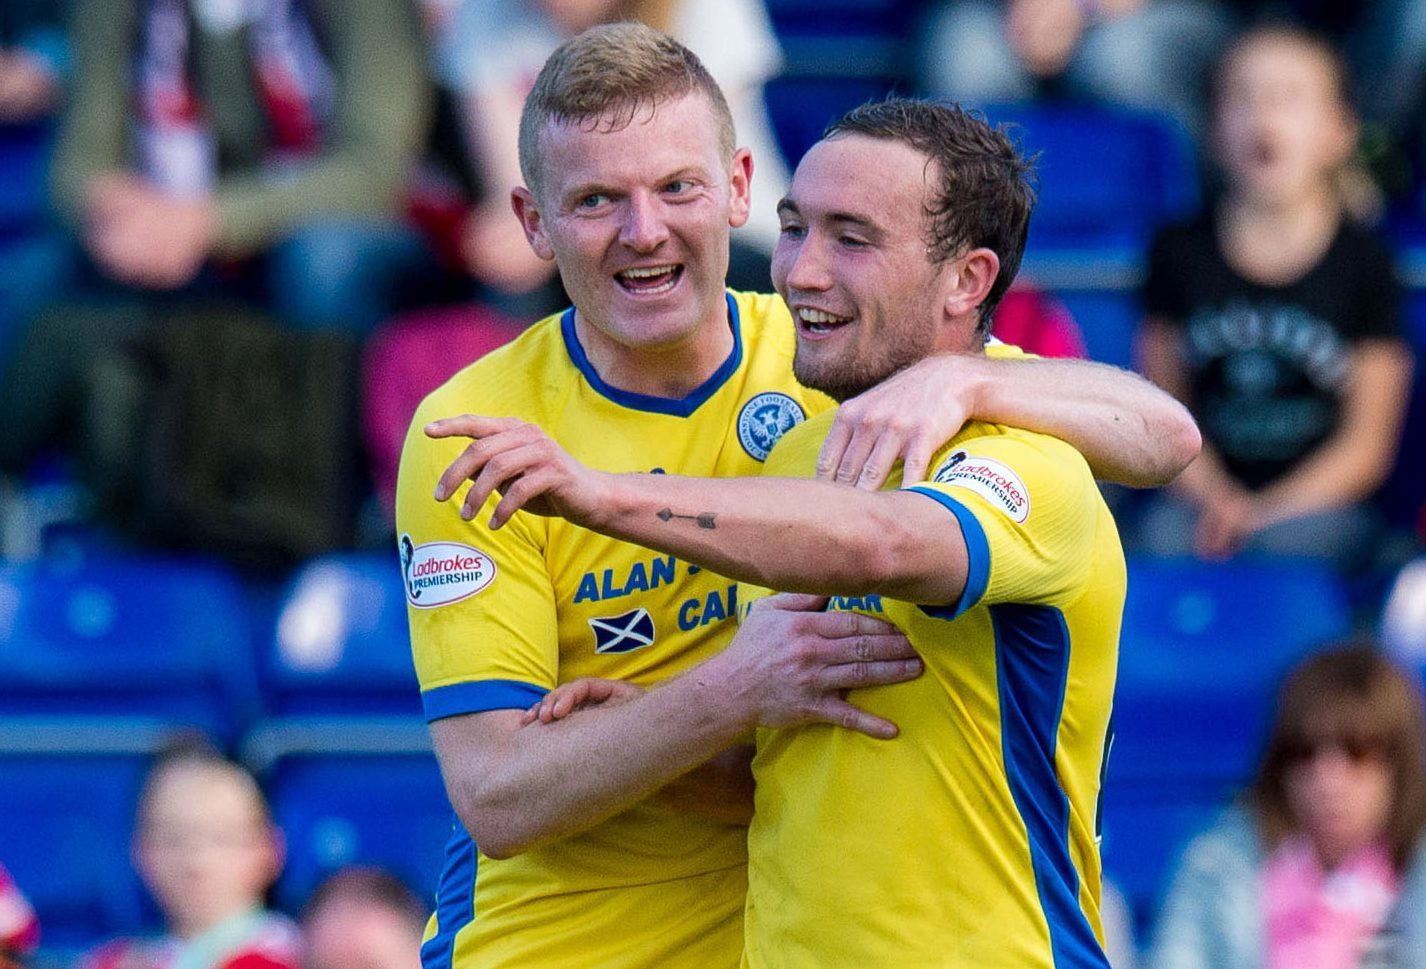 Chris Kane celebrates his goal with Brian Easton.